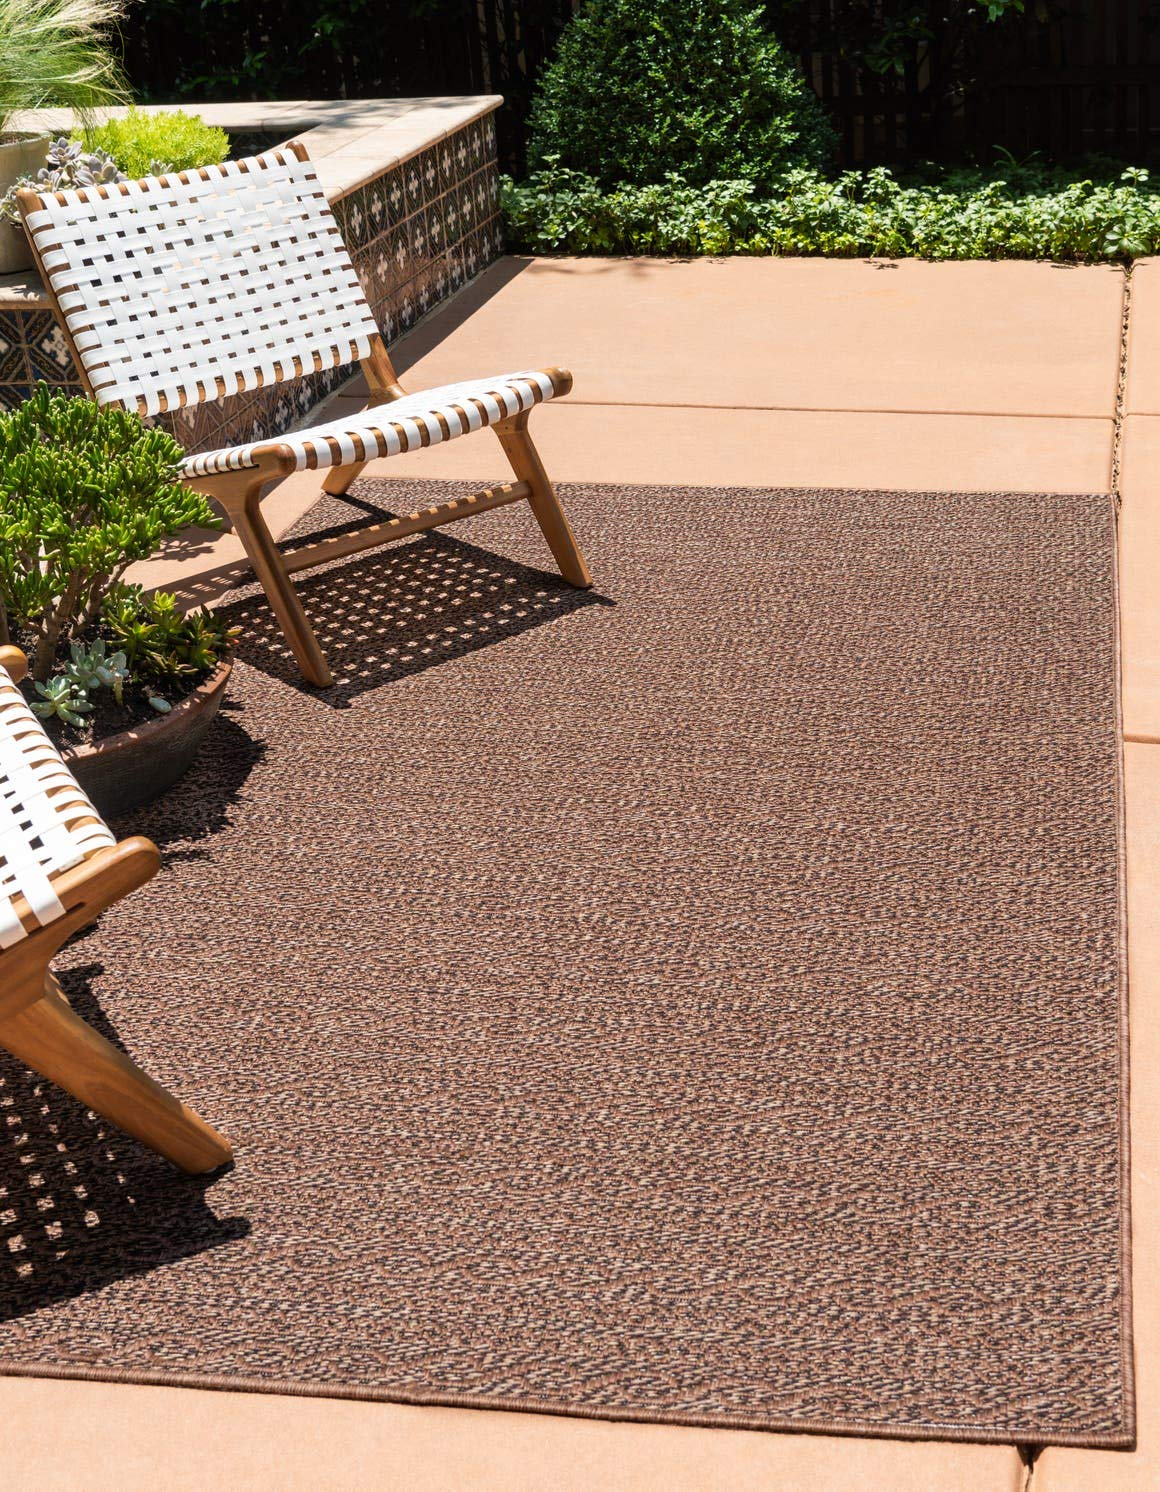 Unique Loom Outdoor Modern Collection Striped Casual Transitional Indoor and Outdoor Flatweave Brown Area Rug 3 3 x 5 0